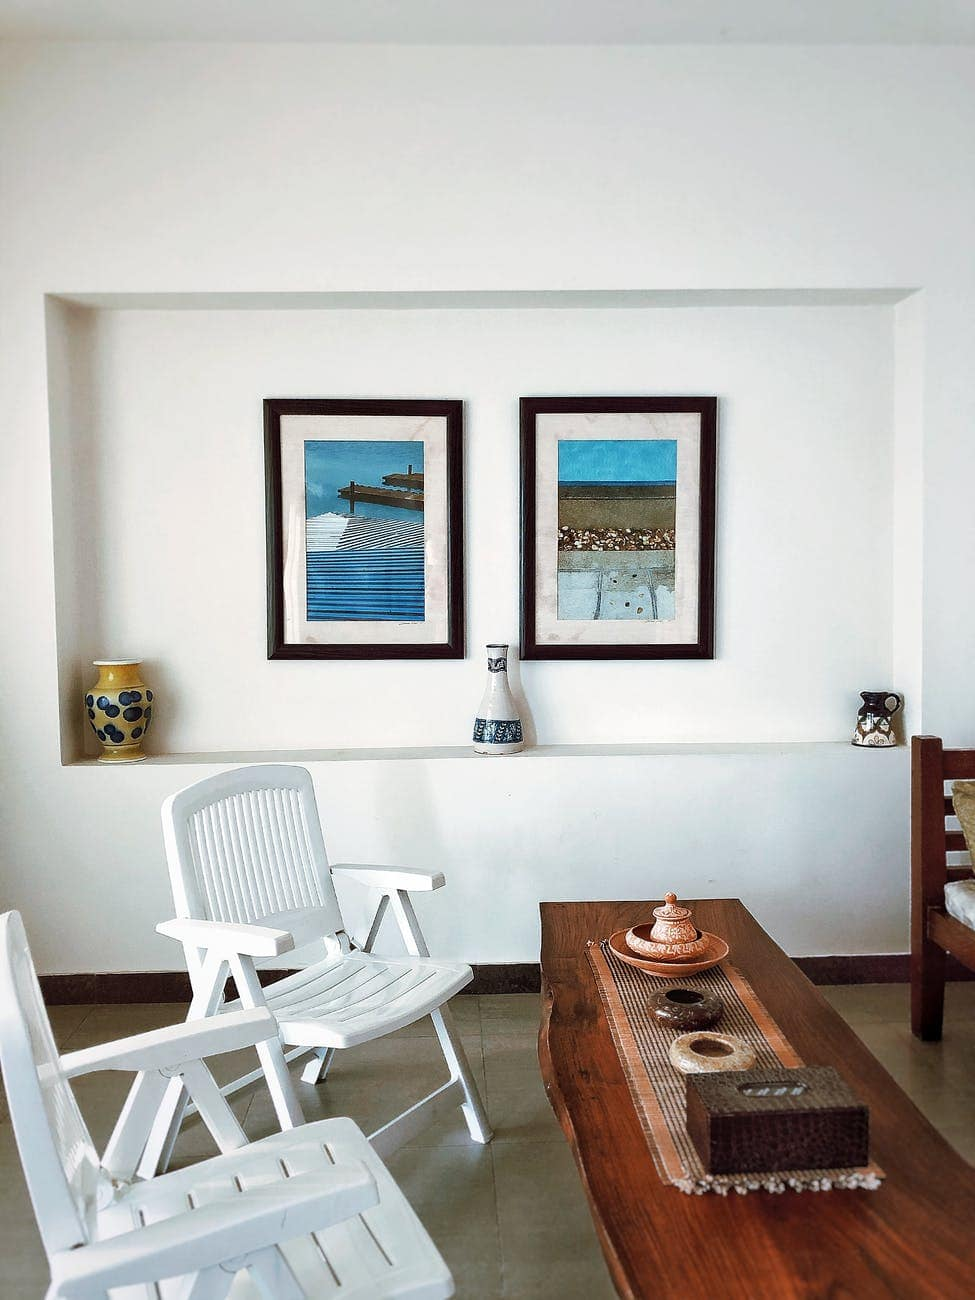 interior of dining room with chairs and pictures in frames